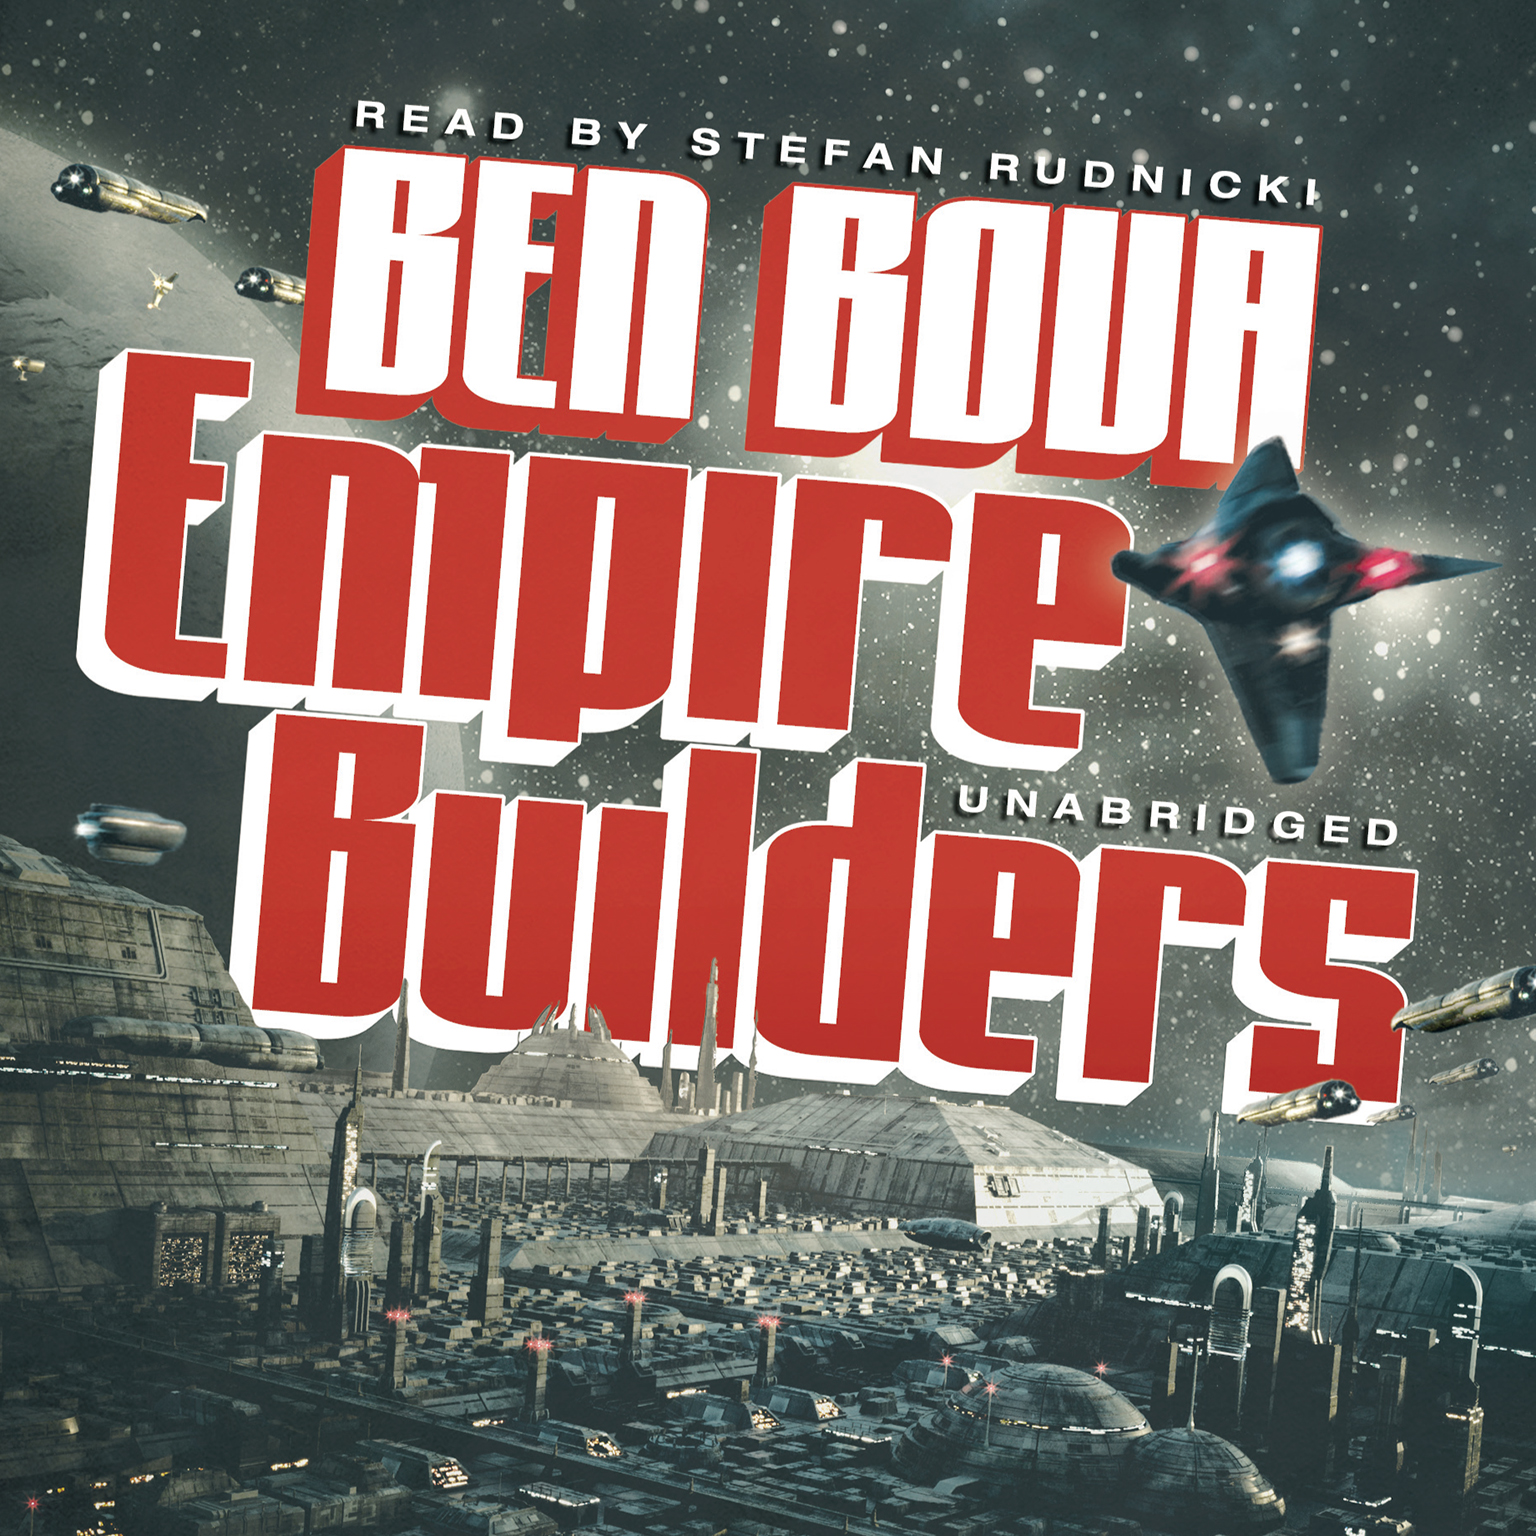 Printable Empire Builders Audiobook Cover Art